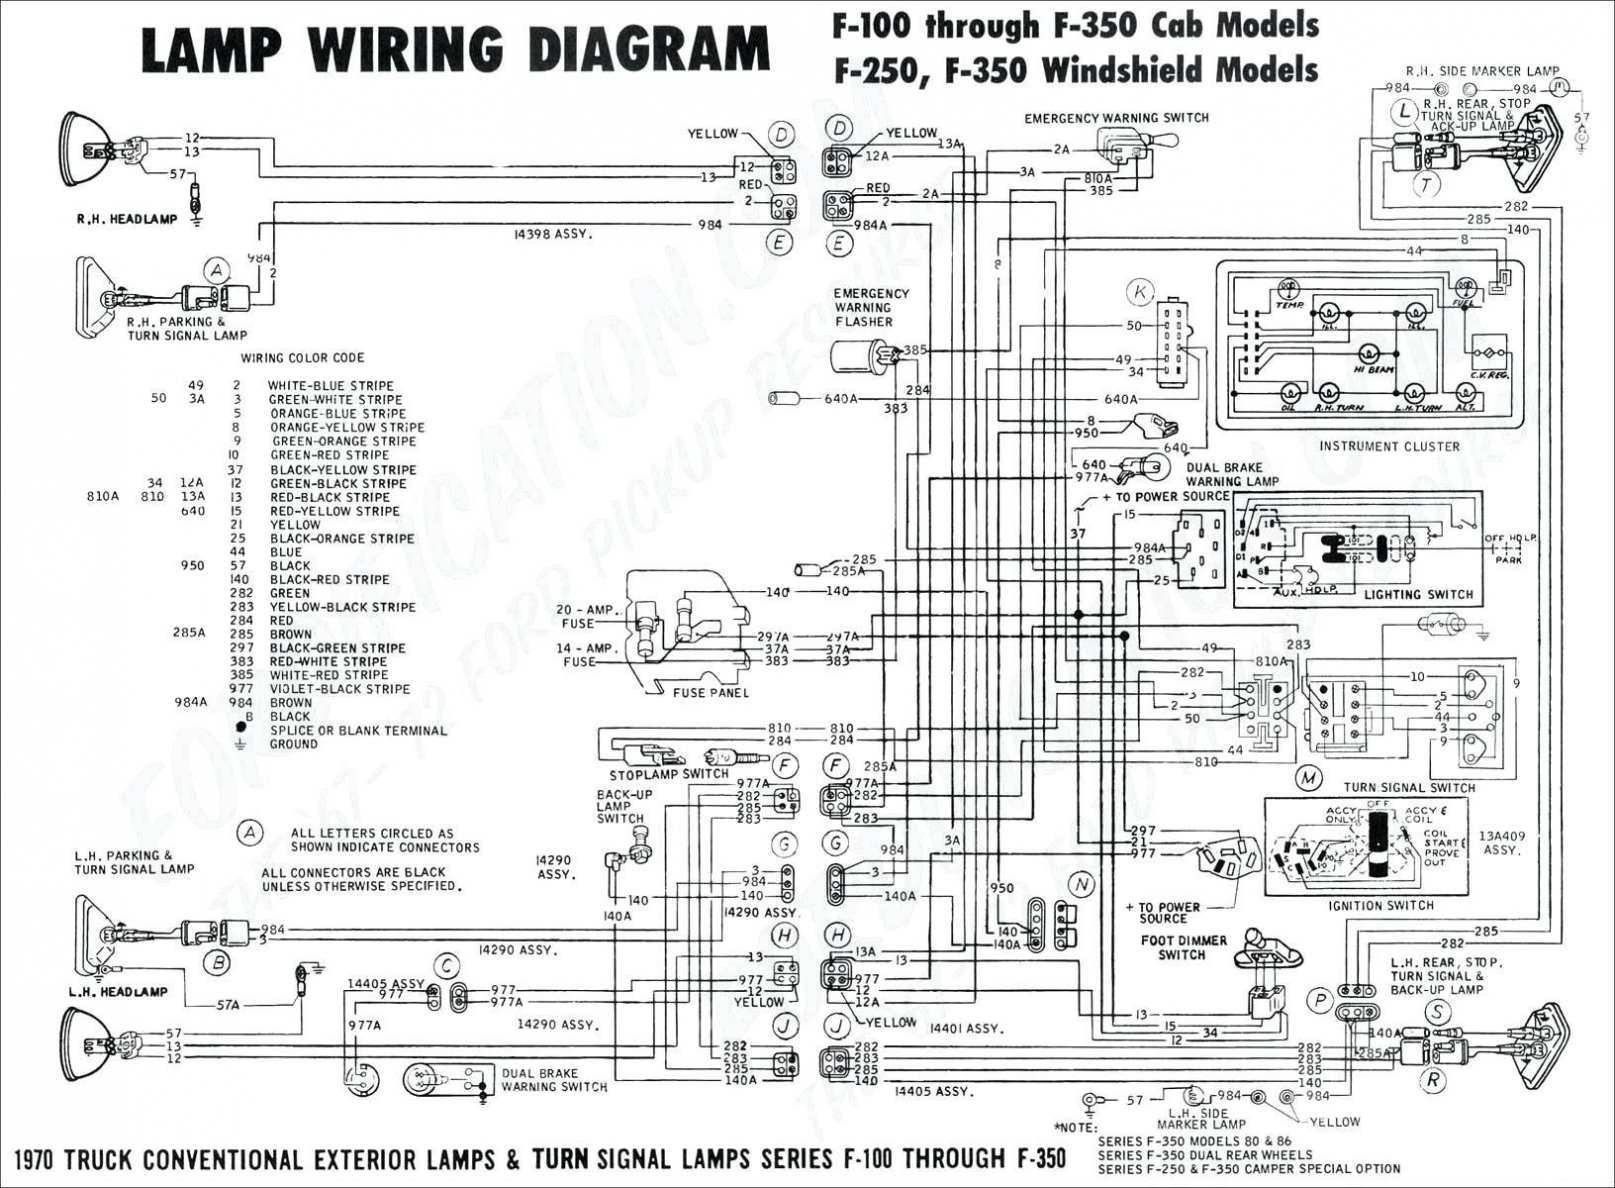 hight resolution of 2013 camaro radio wiring diagram wiring diagram centre 2010 camaro headlight wiring diagram wiring diagram2010 camaro